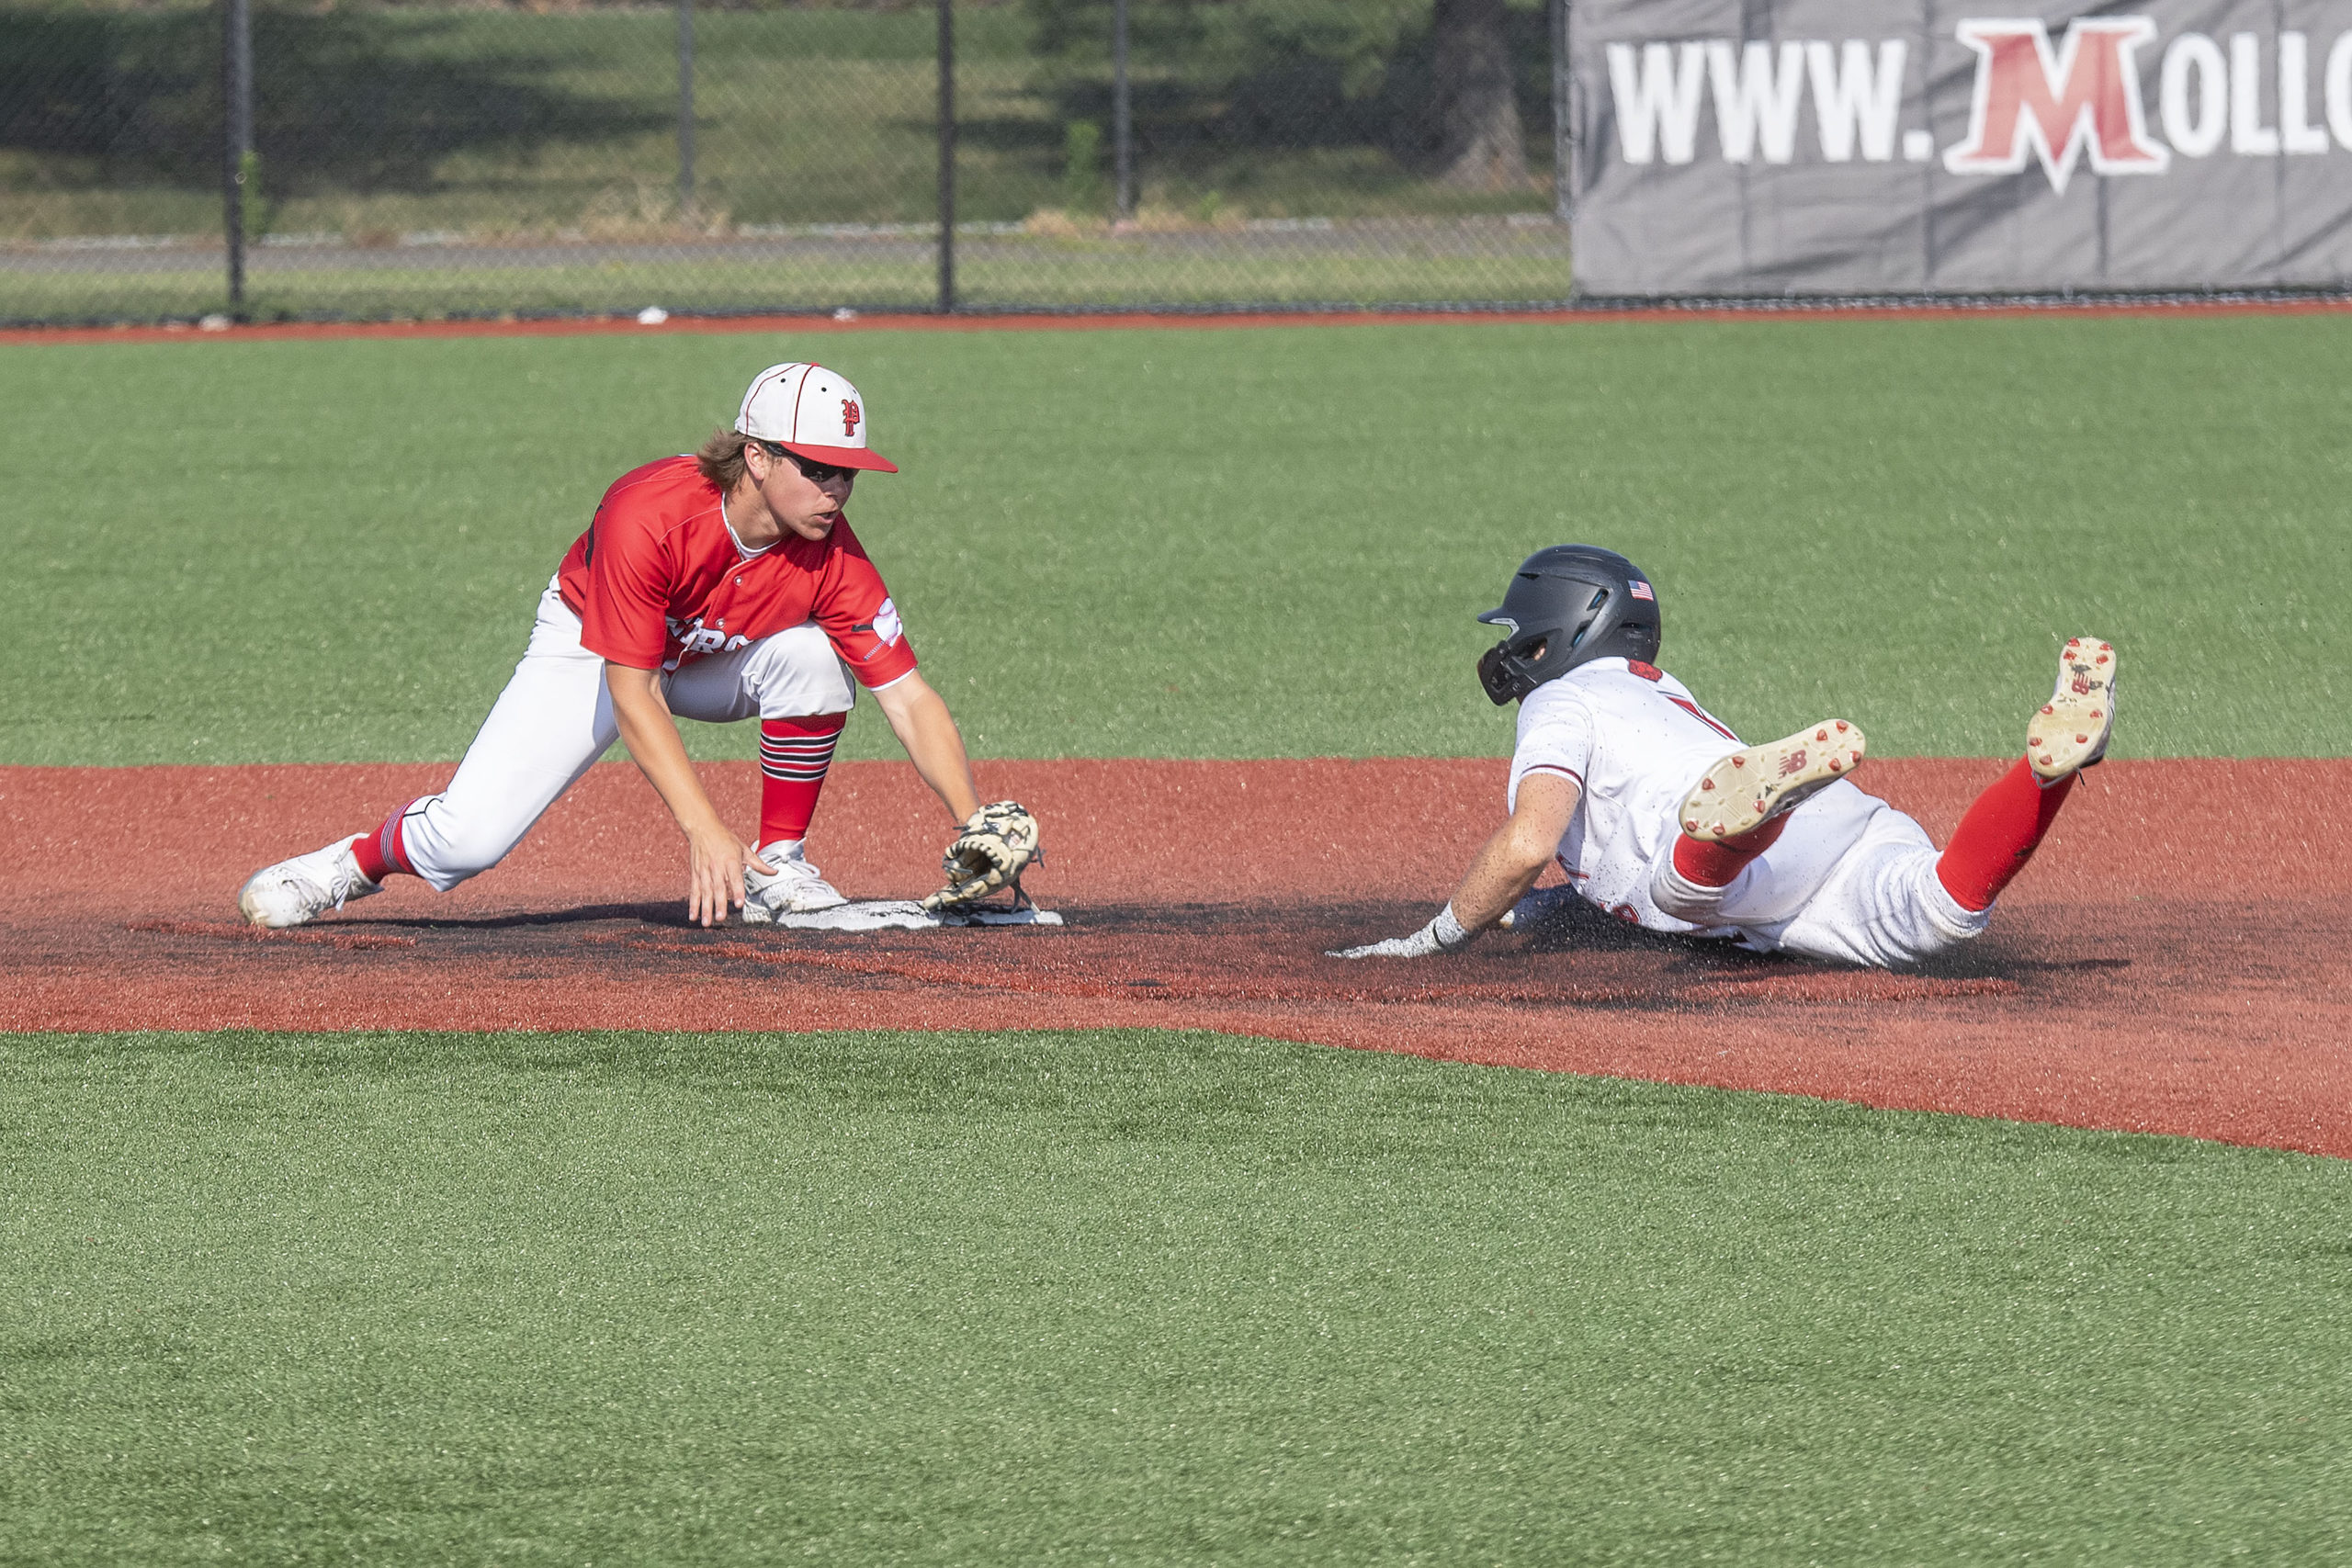 Whaler Christian Pantina thwarts an attempt to steal second base after receiving a throw from catcher Tucker Schiavoni.